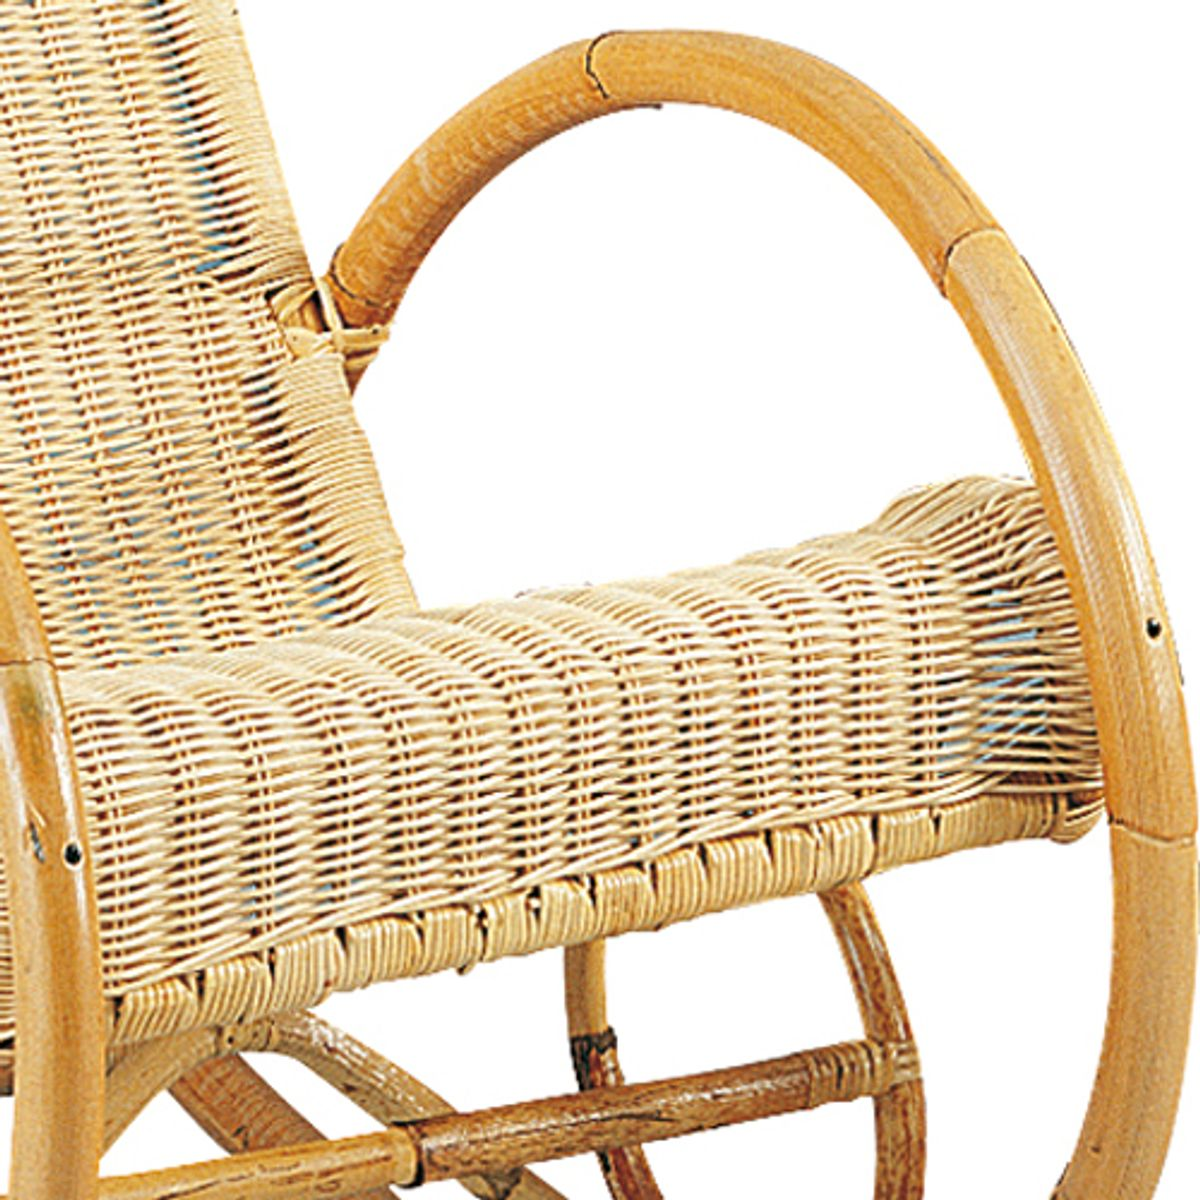 Rocking chair en manau et moelle de rotin naturelle